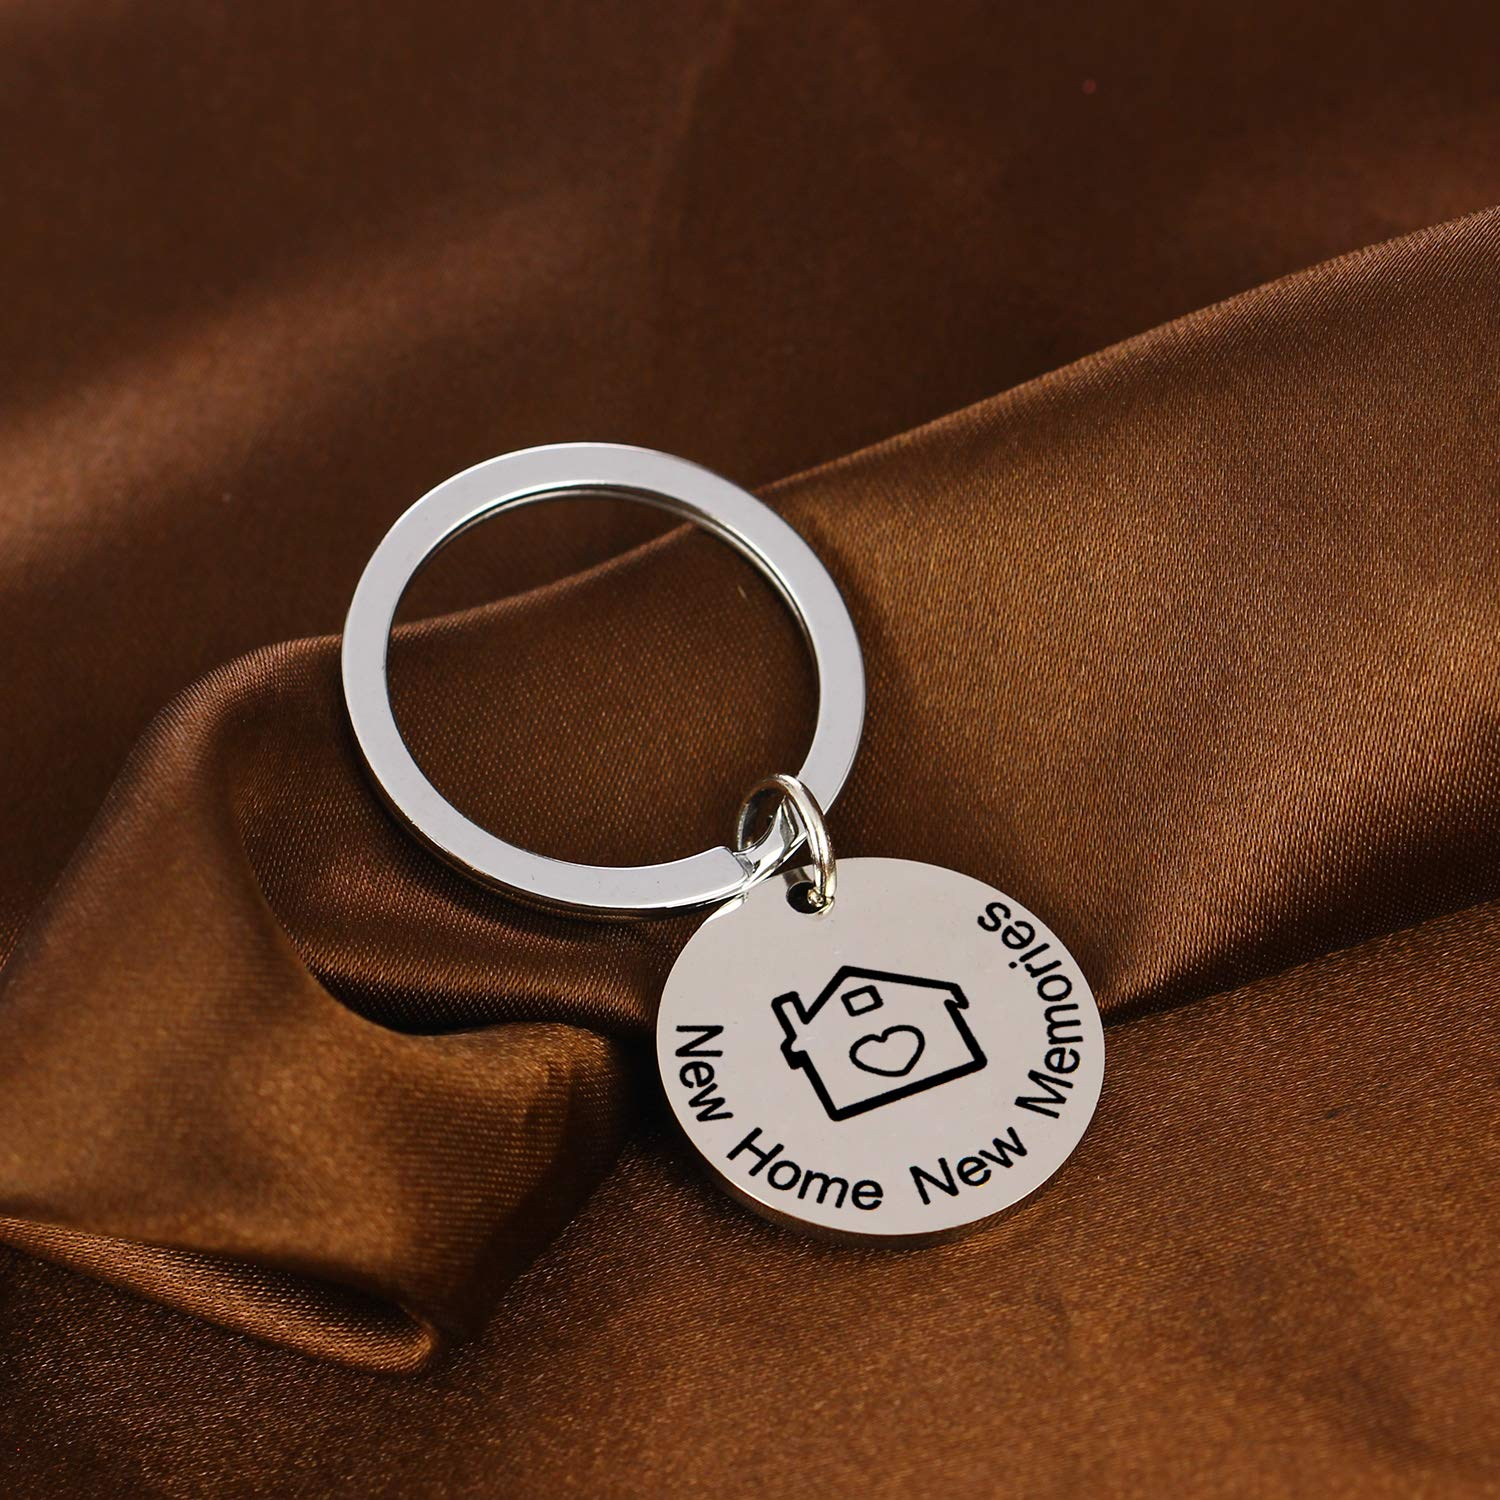 New Home Keychain New Memories Keychain First Home Gift Housewarming Gift Realtor Closing Jewelry Key Chain Gifts